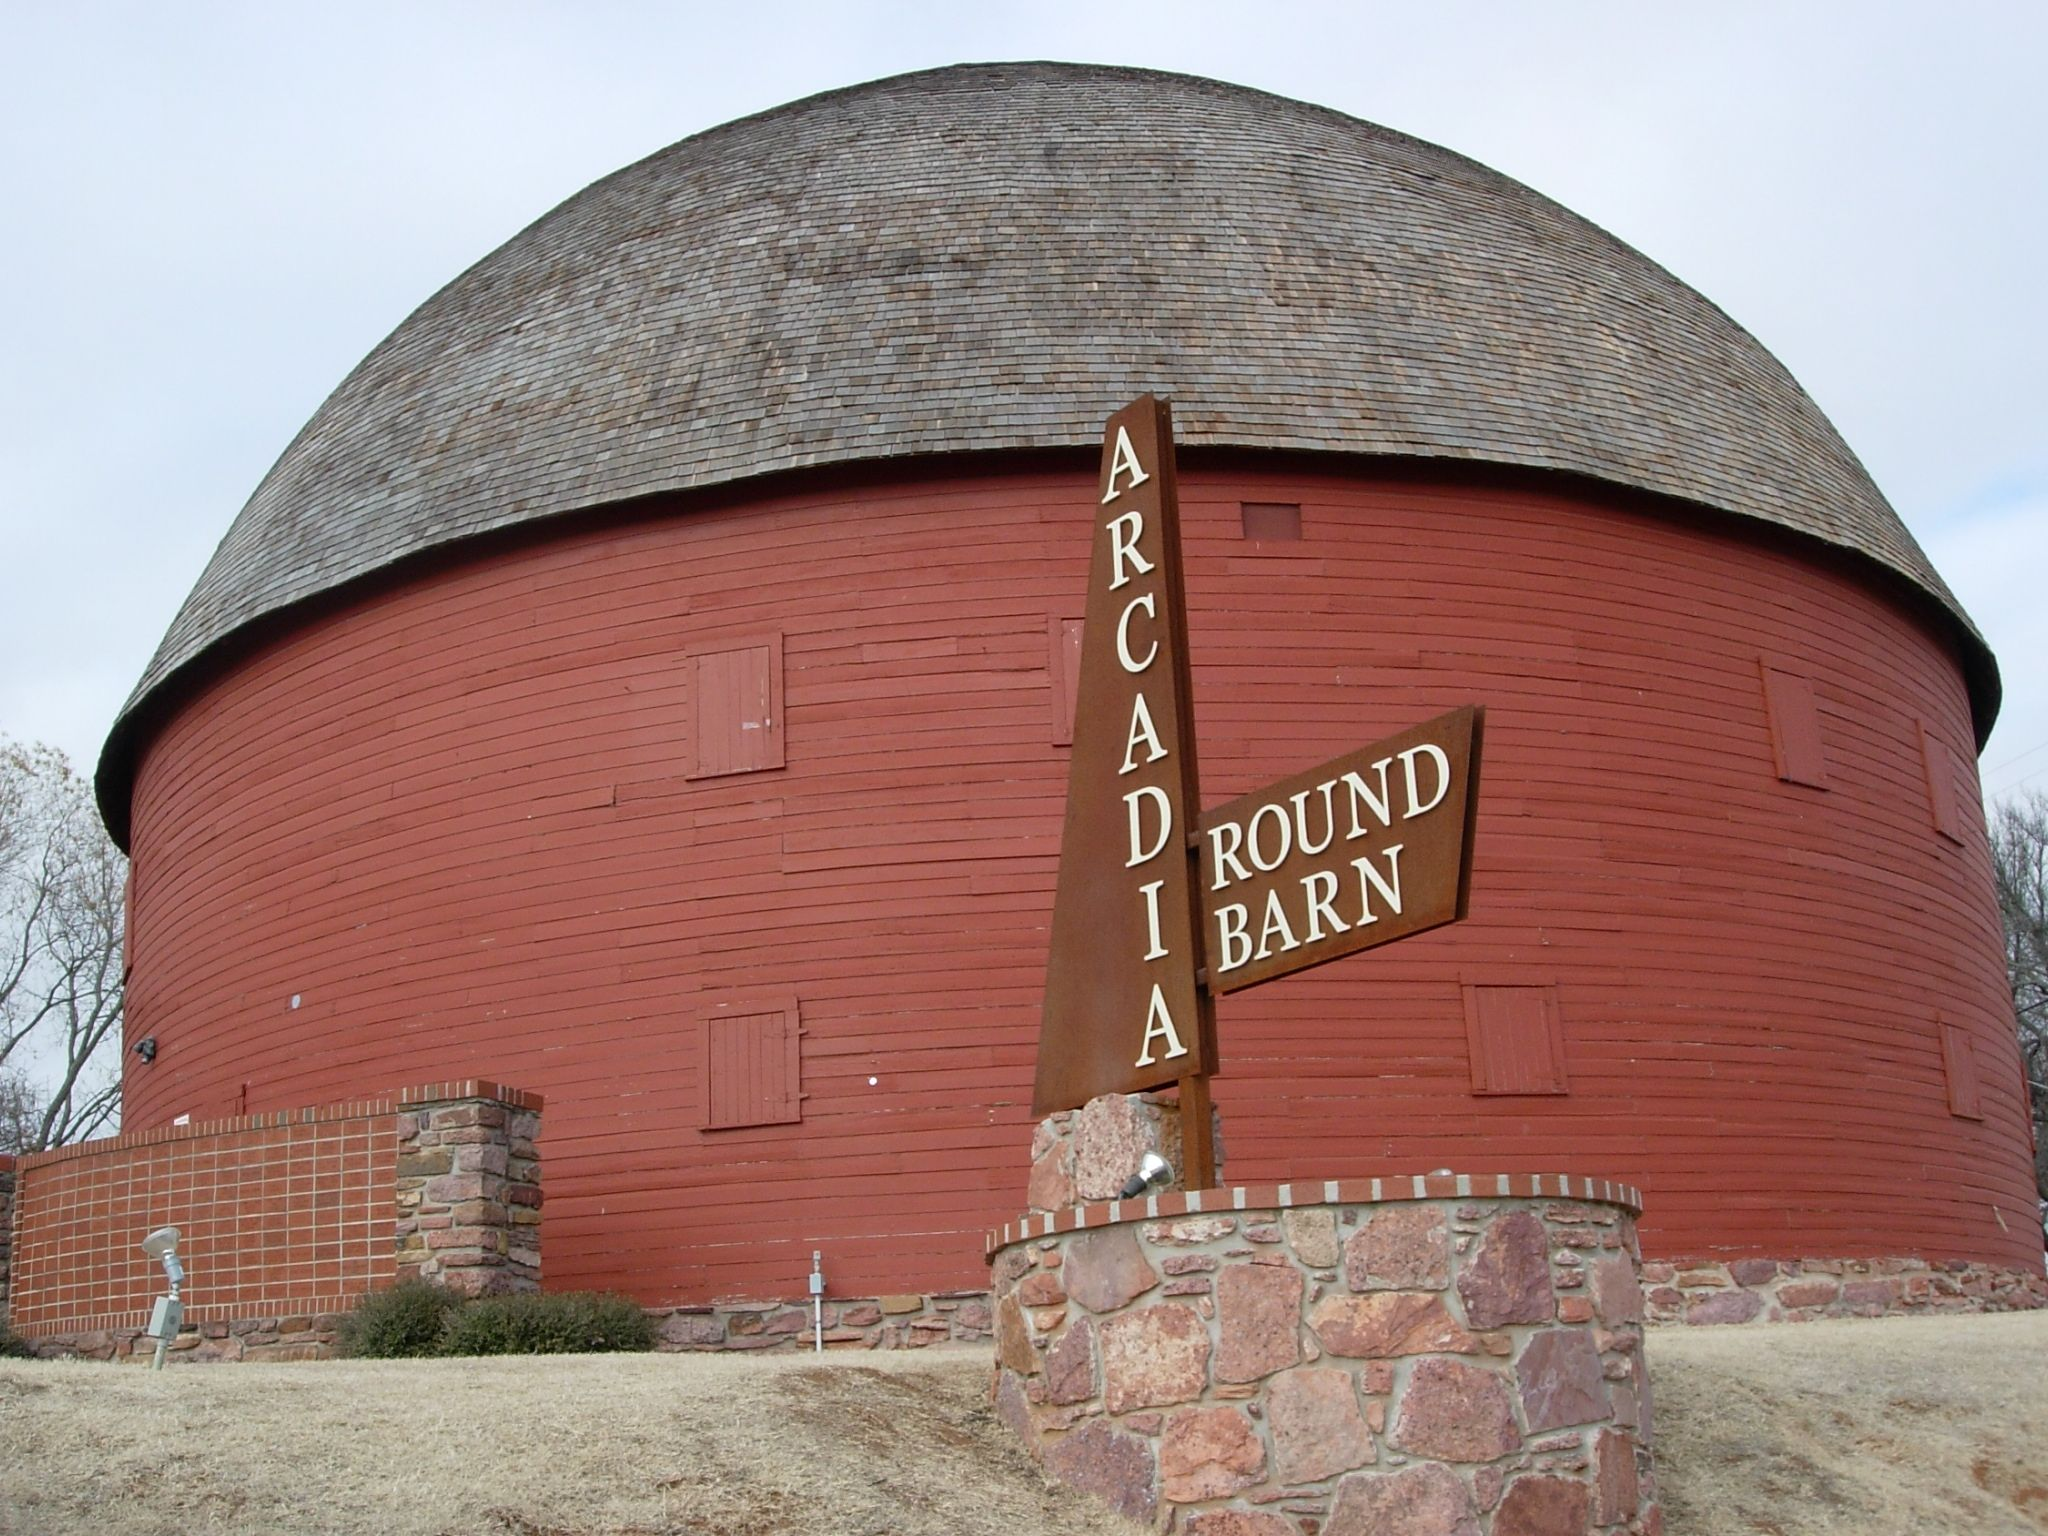 The Arcadia Round Barn - Google Search | Barn, Old barns ...